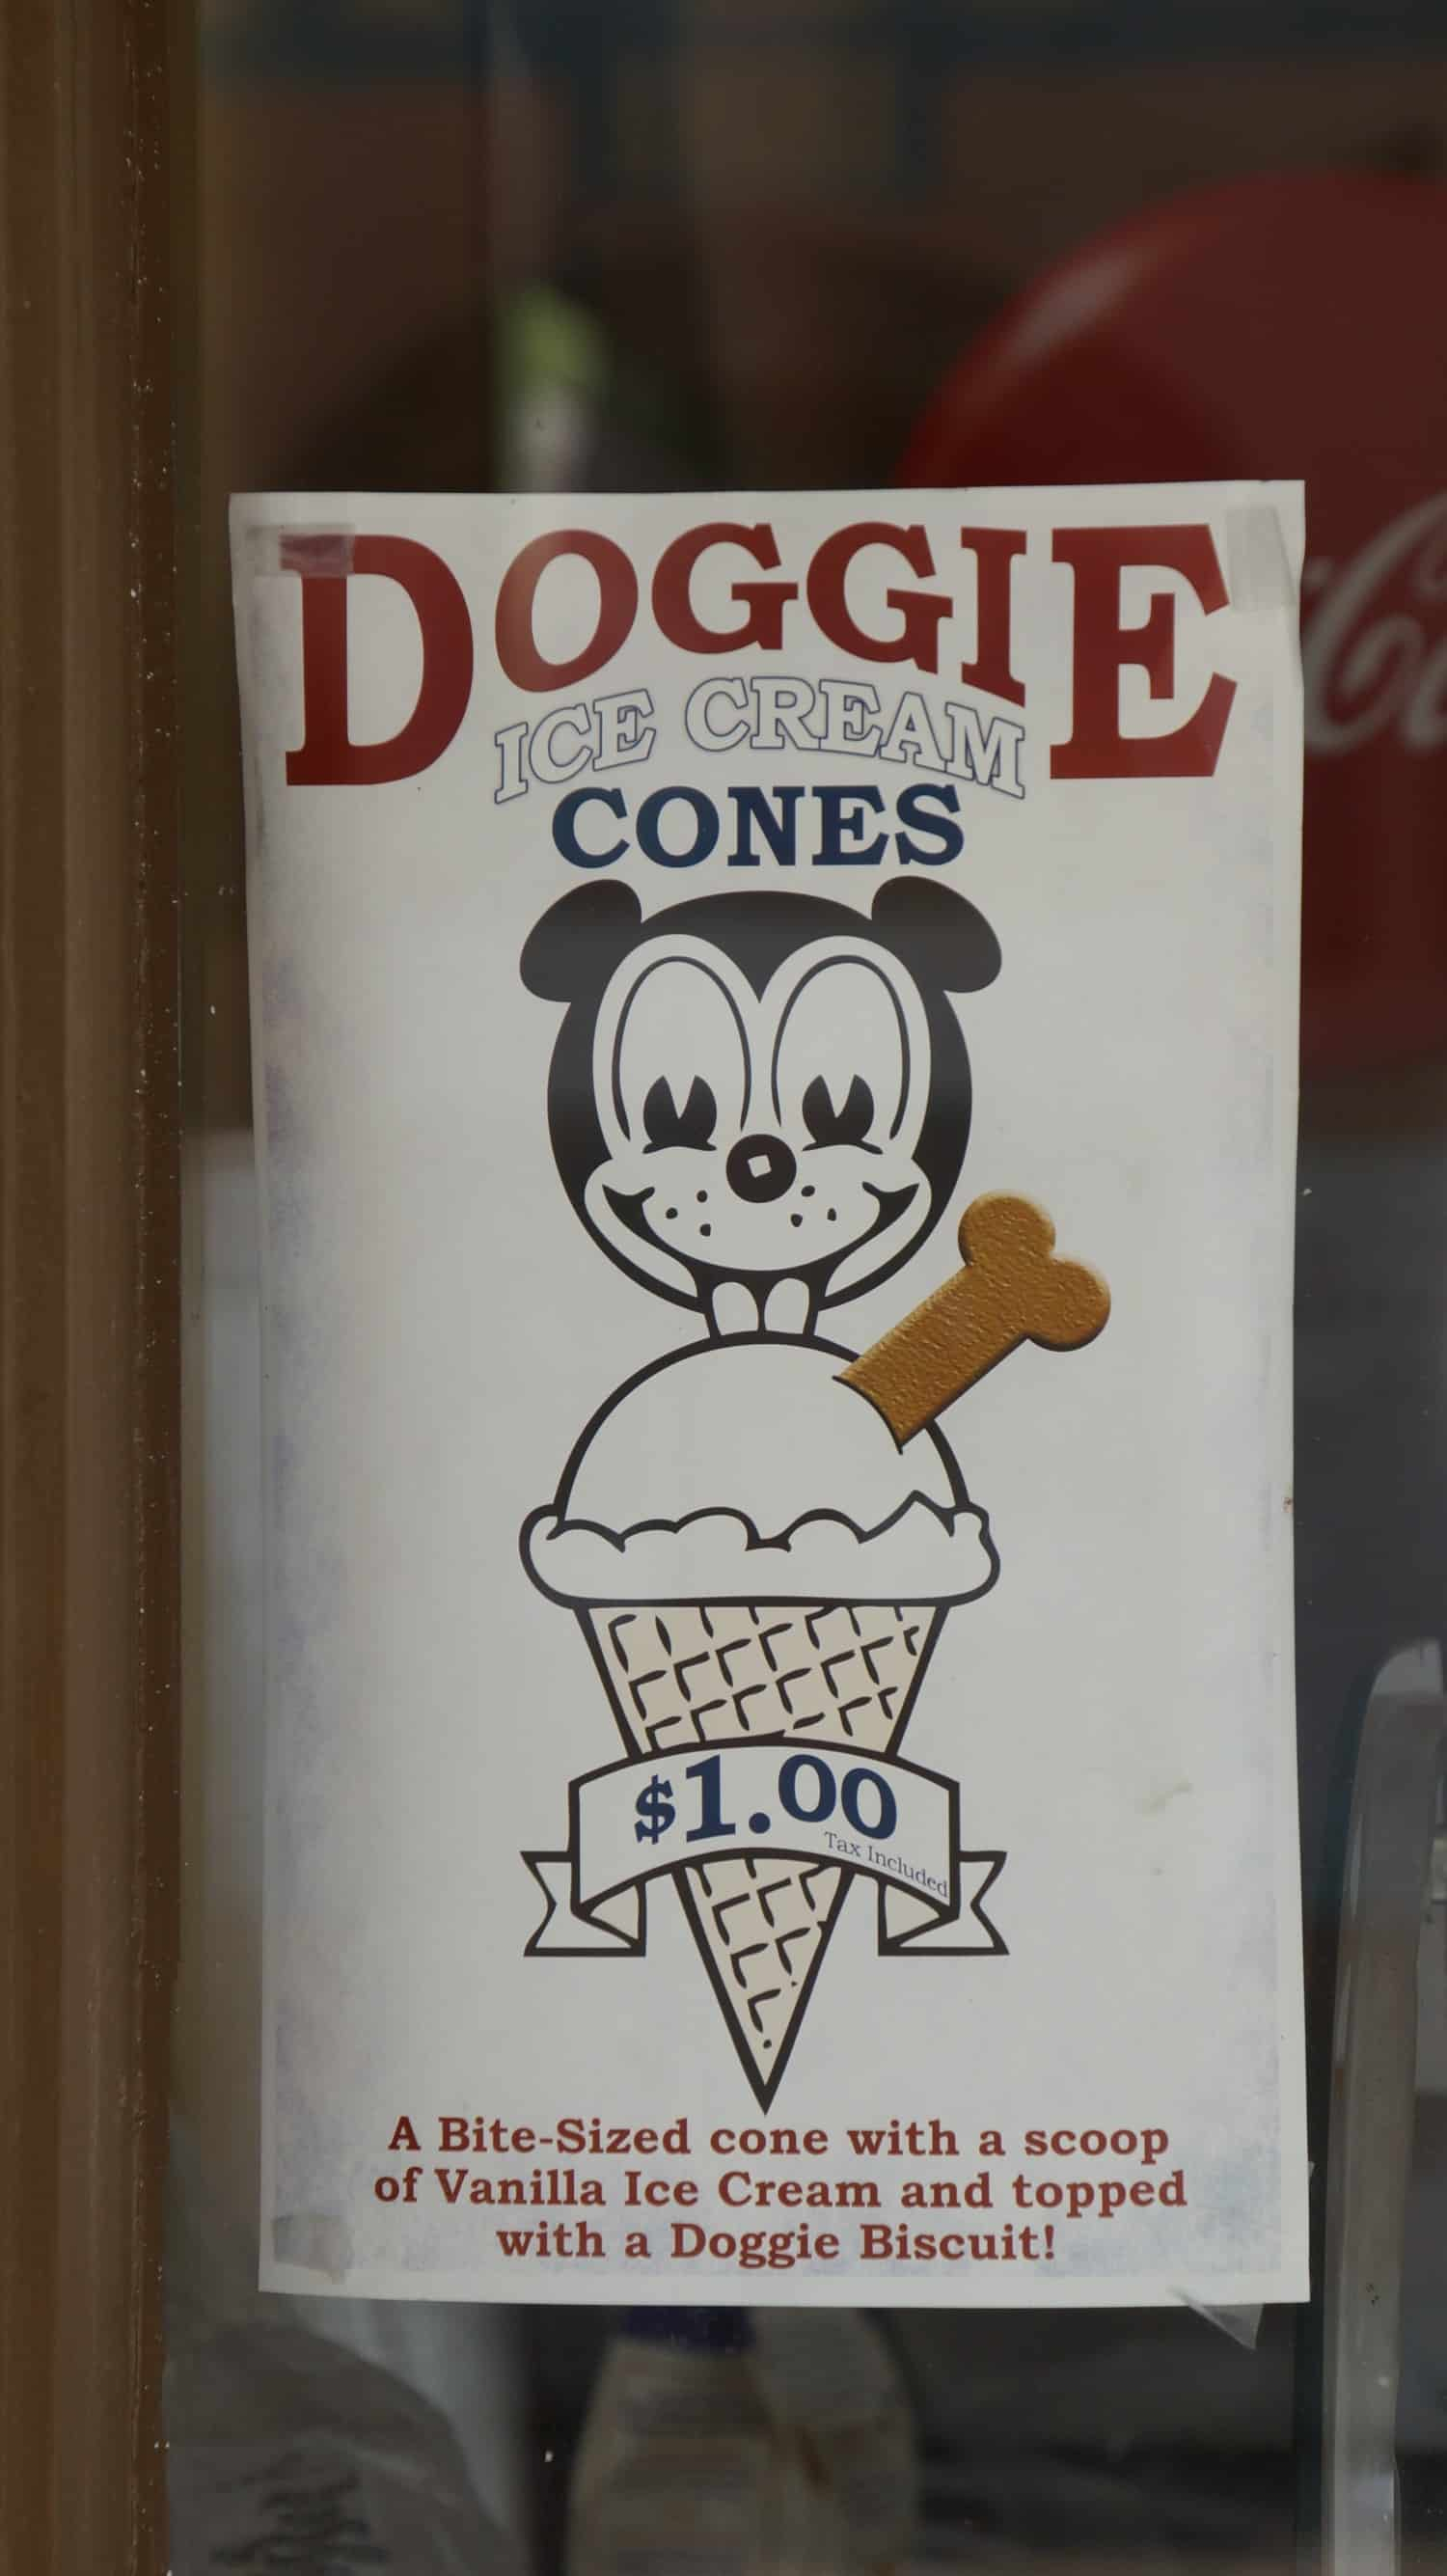 Poster for Doggie Ice Cream Cones at T. Millers Mercantile in pet friendly Tombstone, AZ